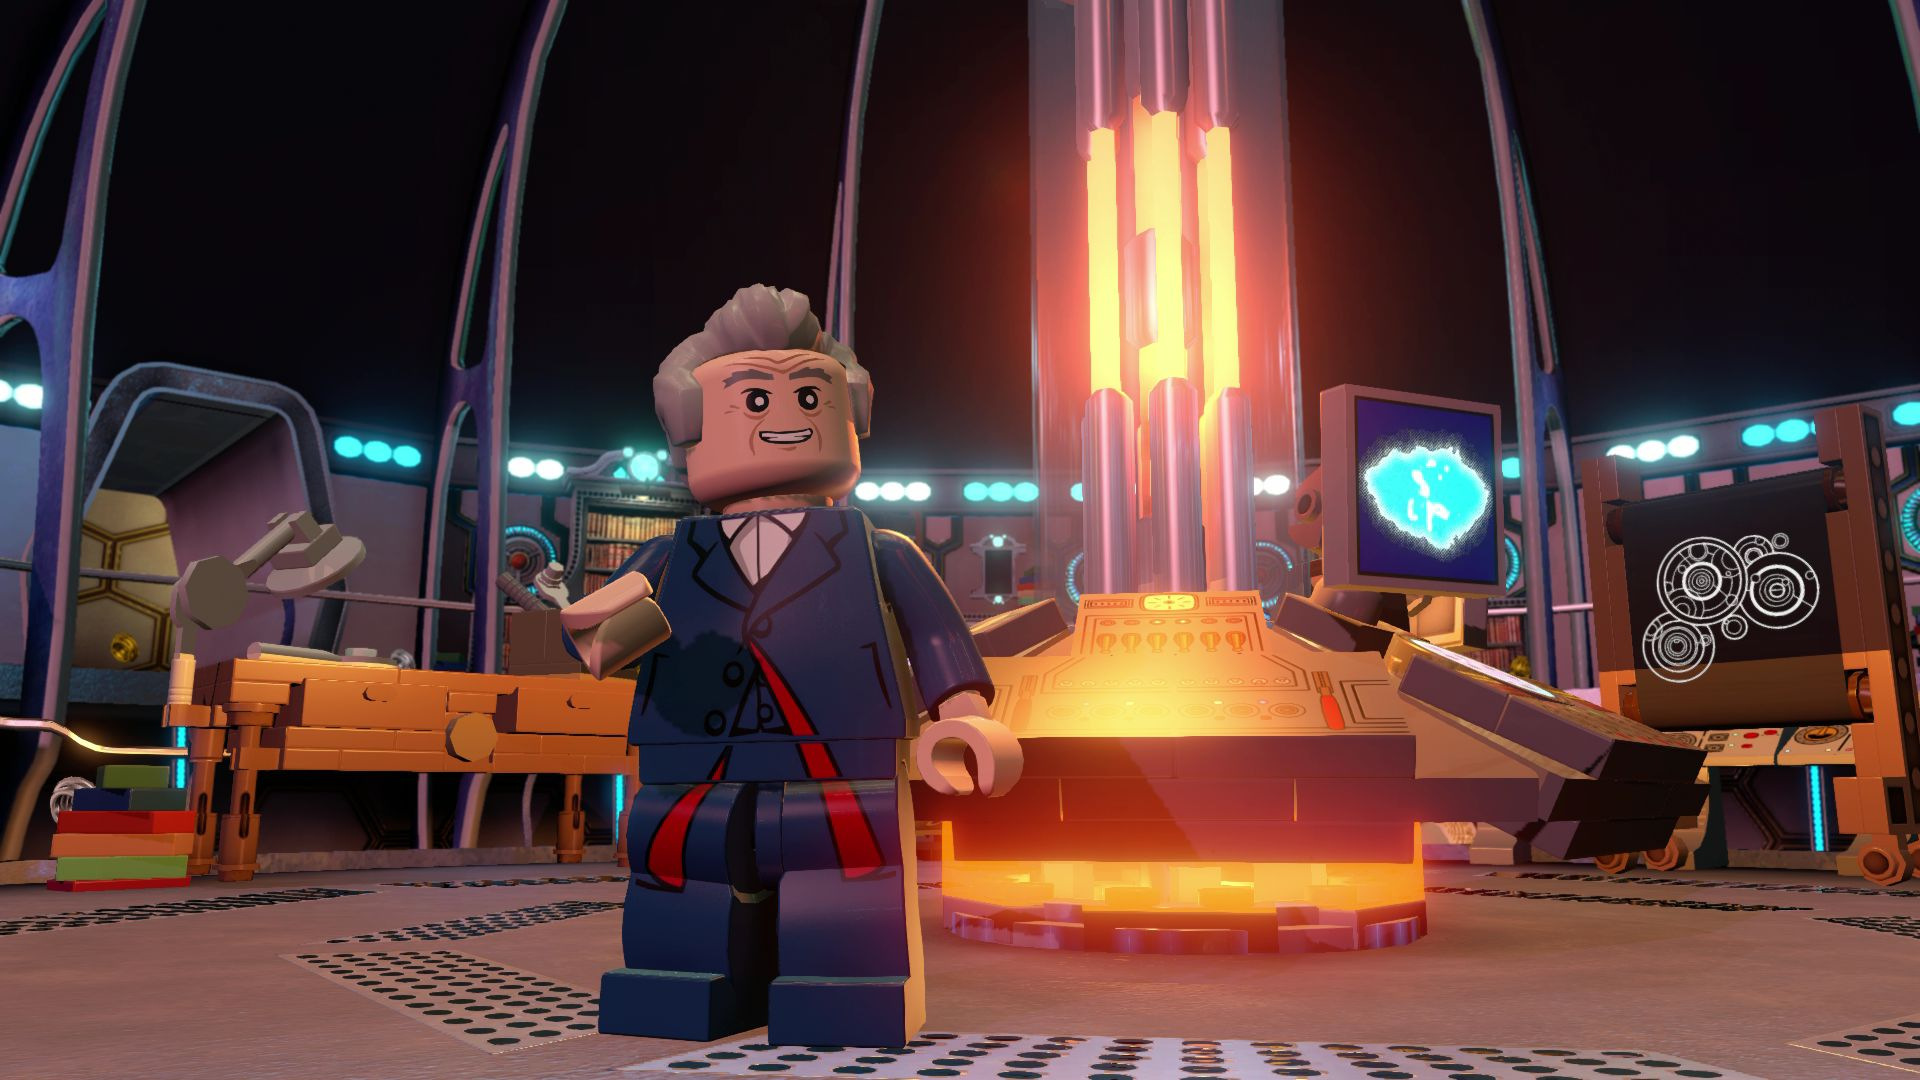 Doctor Who Level Pack - 52 years worth of fan service